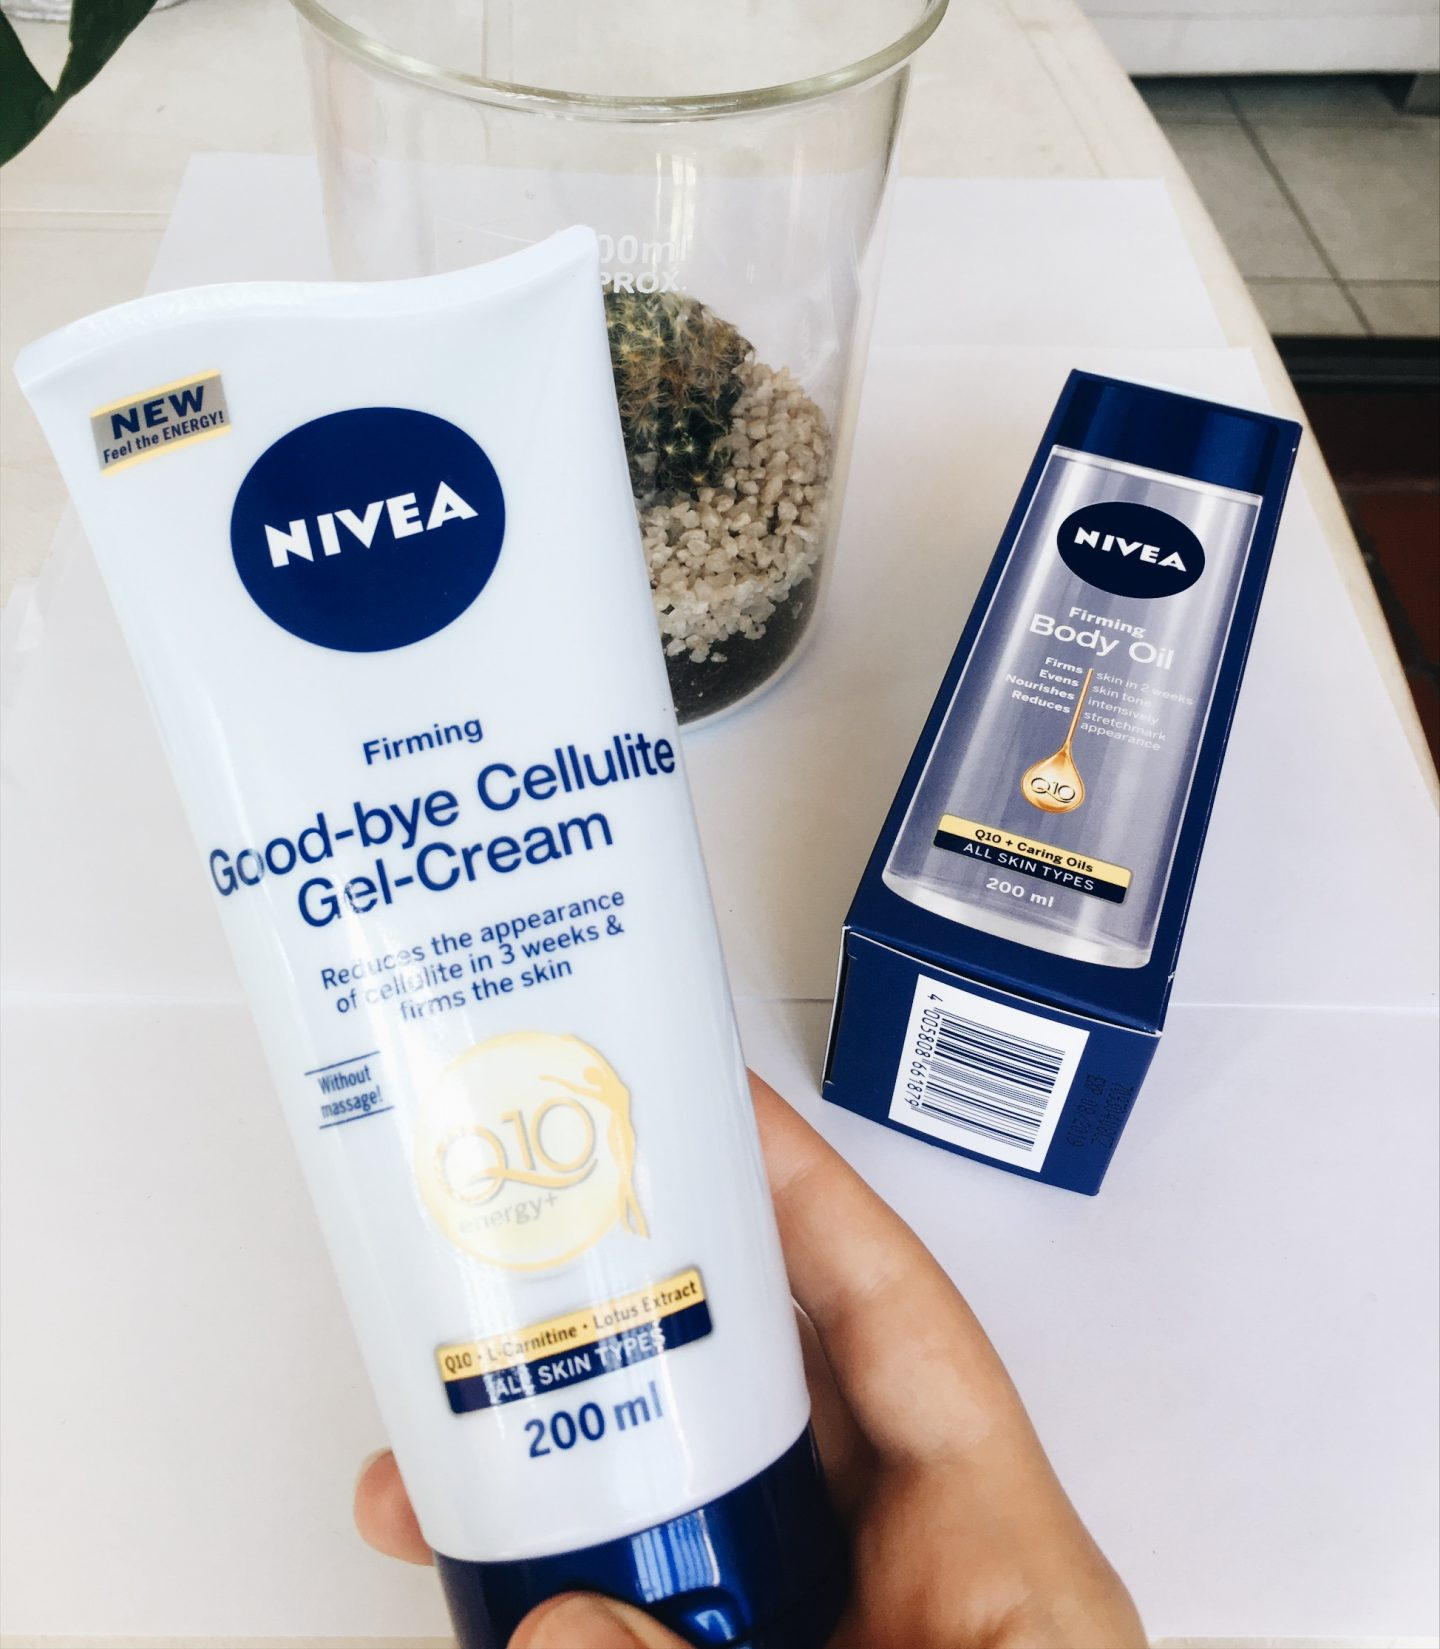 body firming gel from nivea